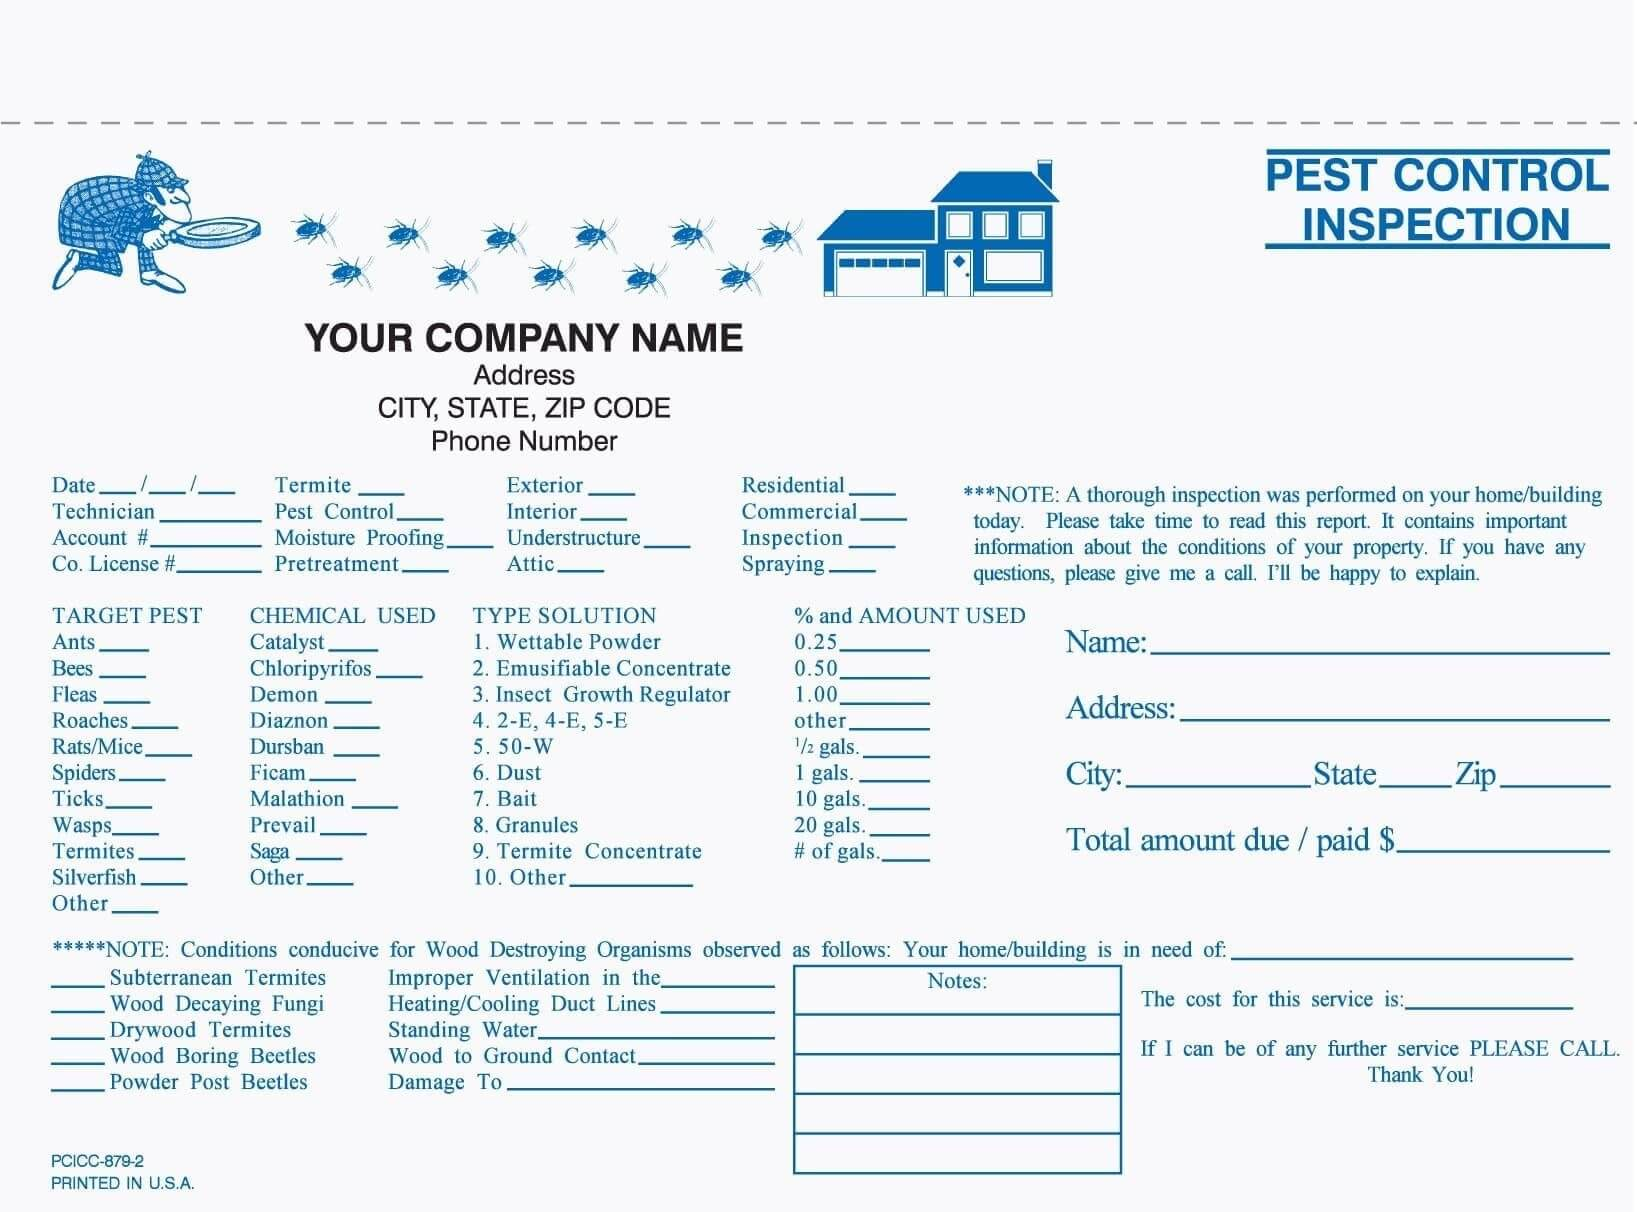 2 Part Pest Control Inspection Form, Carbonless | Pest Intended For Pest Control Report Template